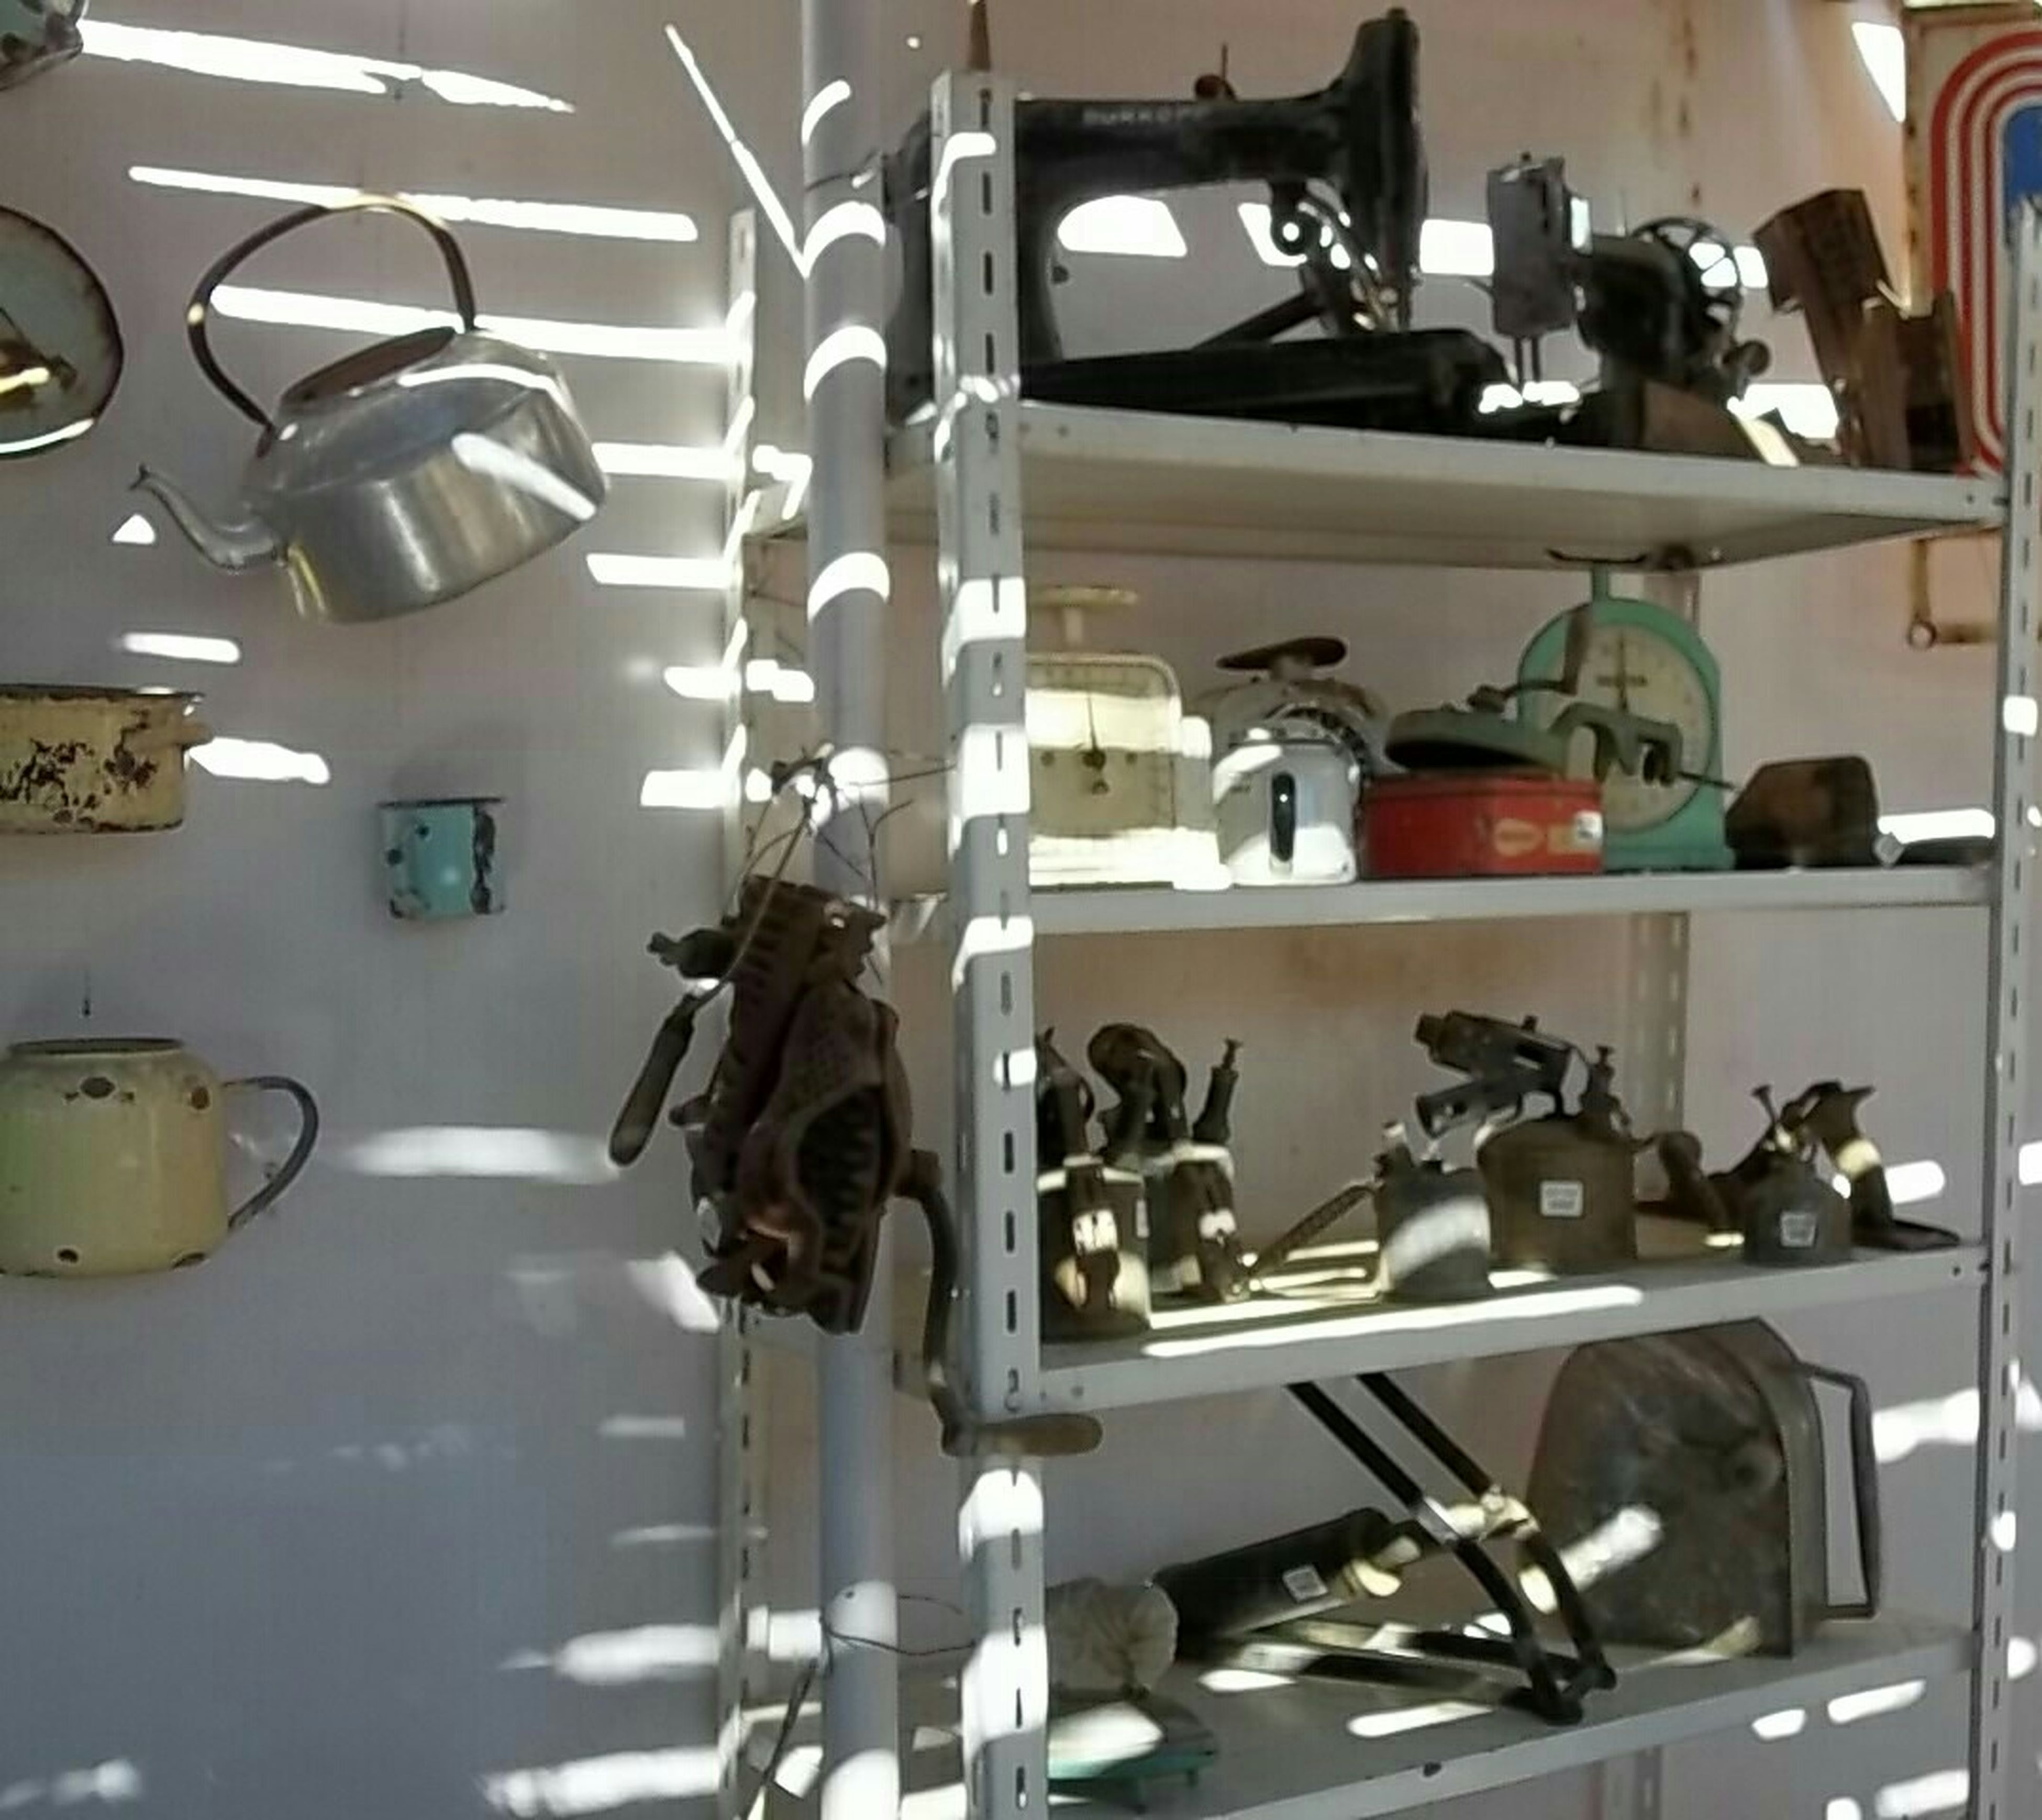 indoors, technology, hanging, variation, shelf, no people, human representation, still life, large group of objects, art and craft, wall - building feature, metal, communication, art, in a row, electricity, close-up, antique, equipment, old-fashioned